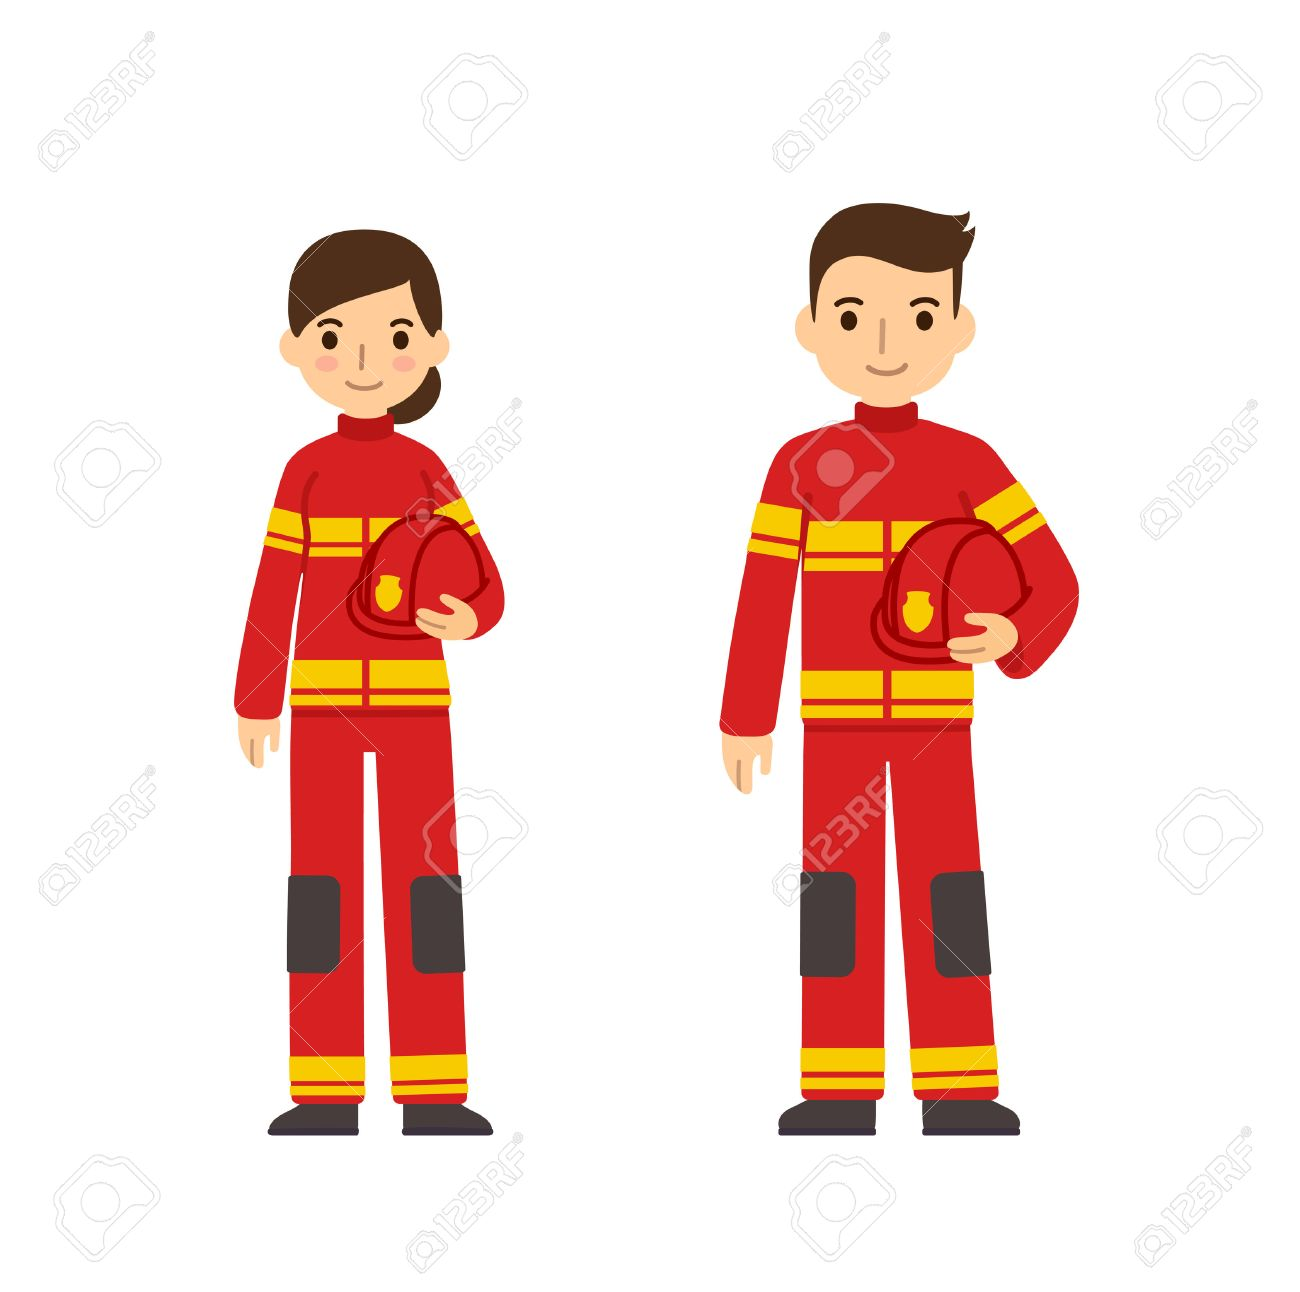 Female Firefighter Images & Stock Pictures. Royalty Free Female ...